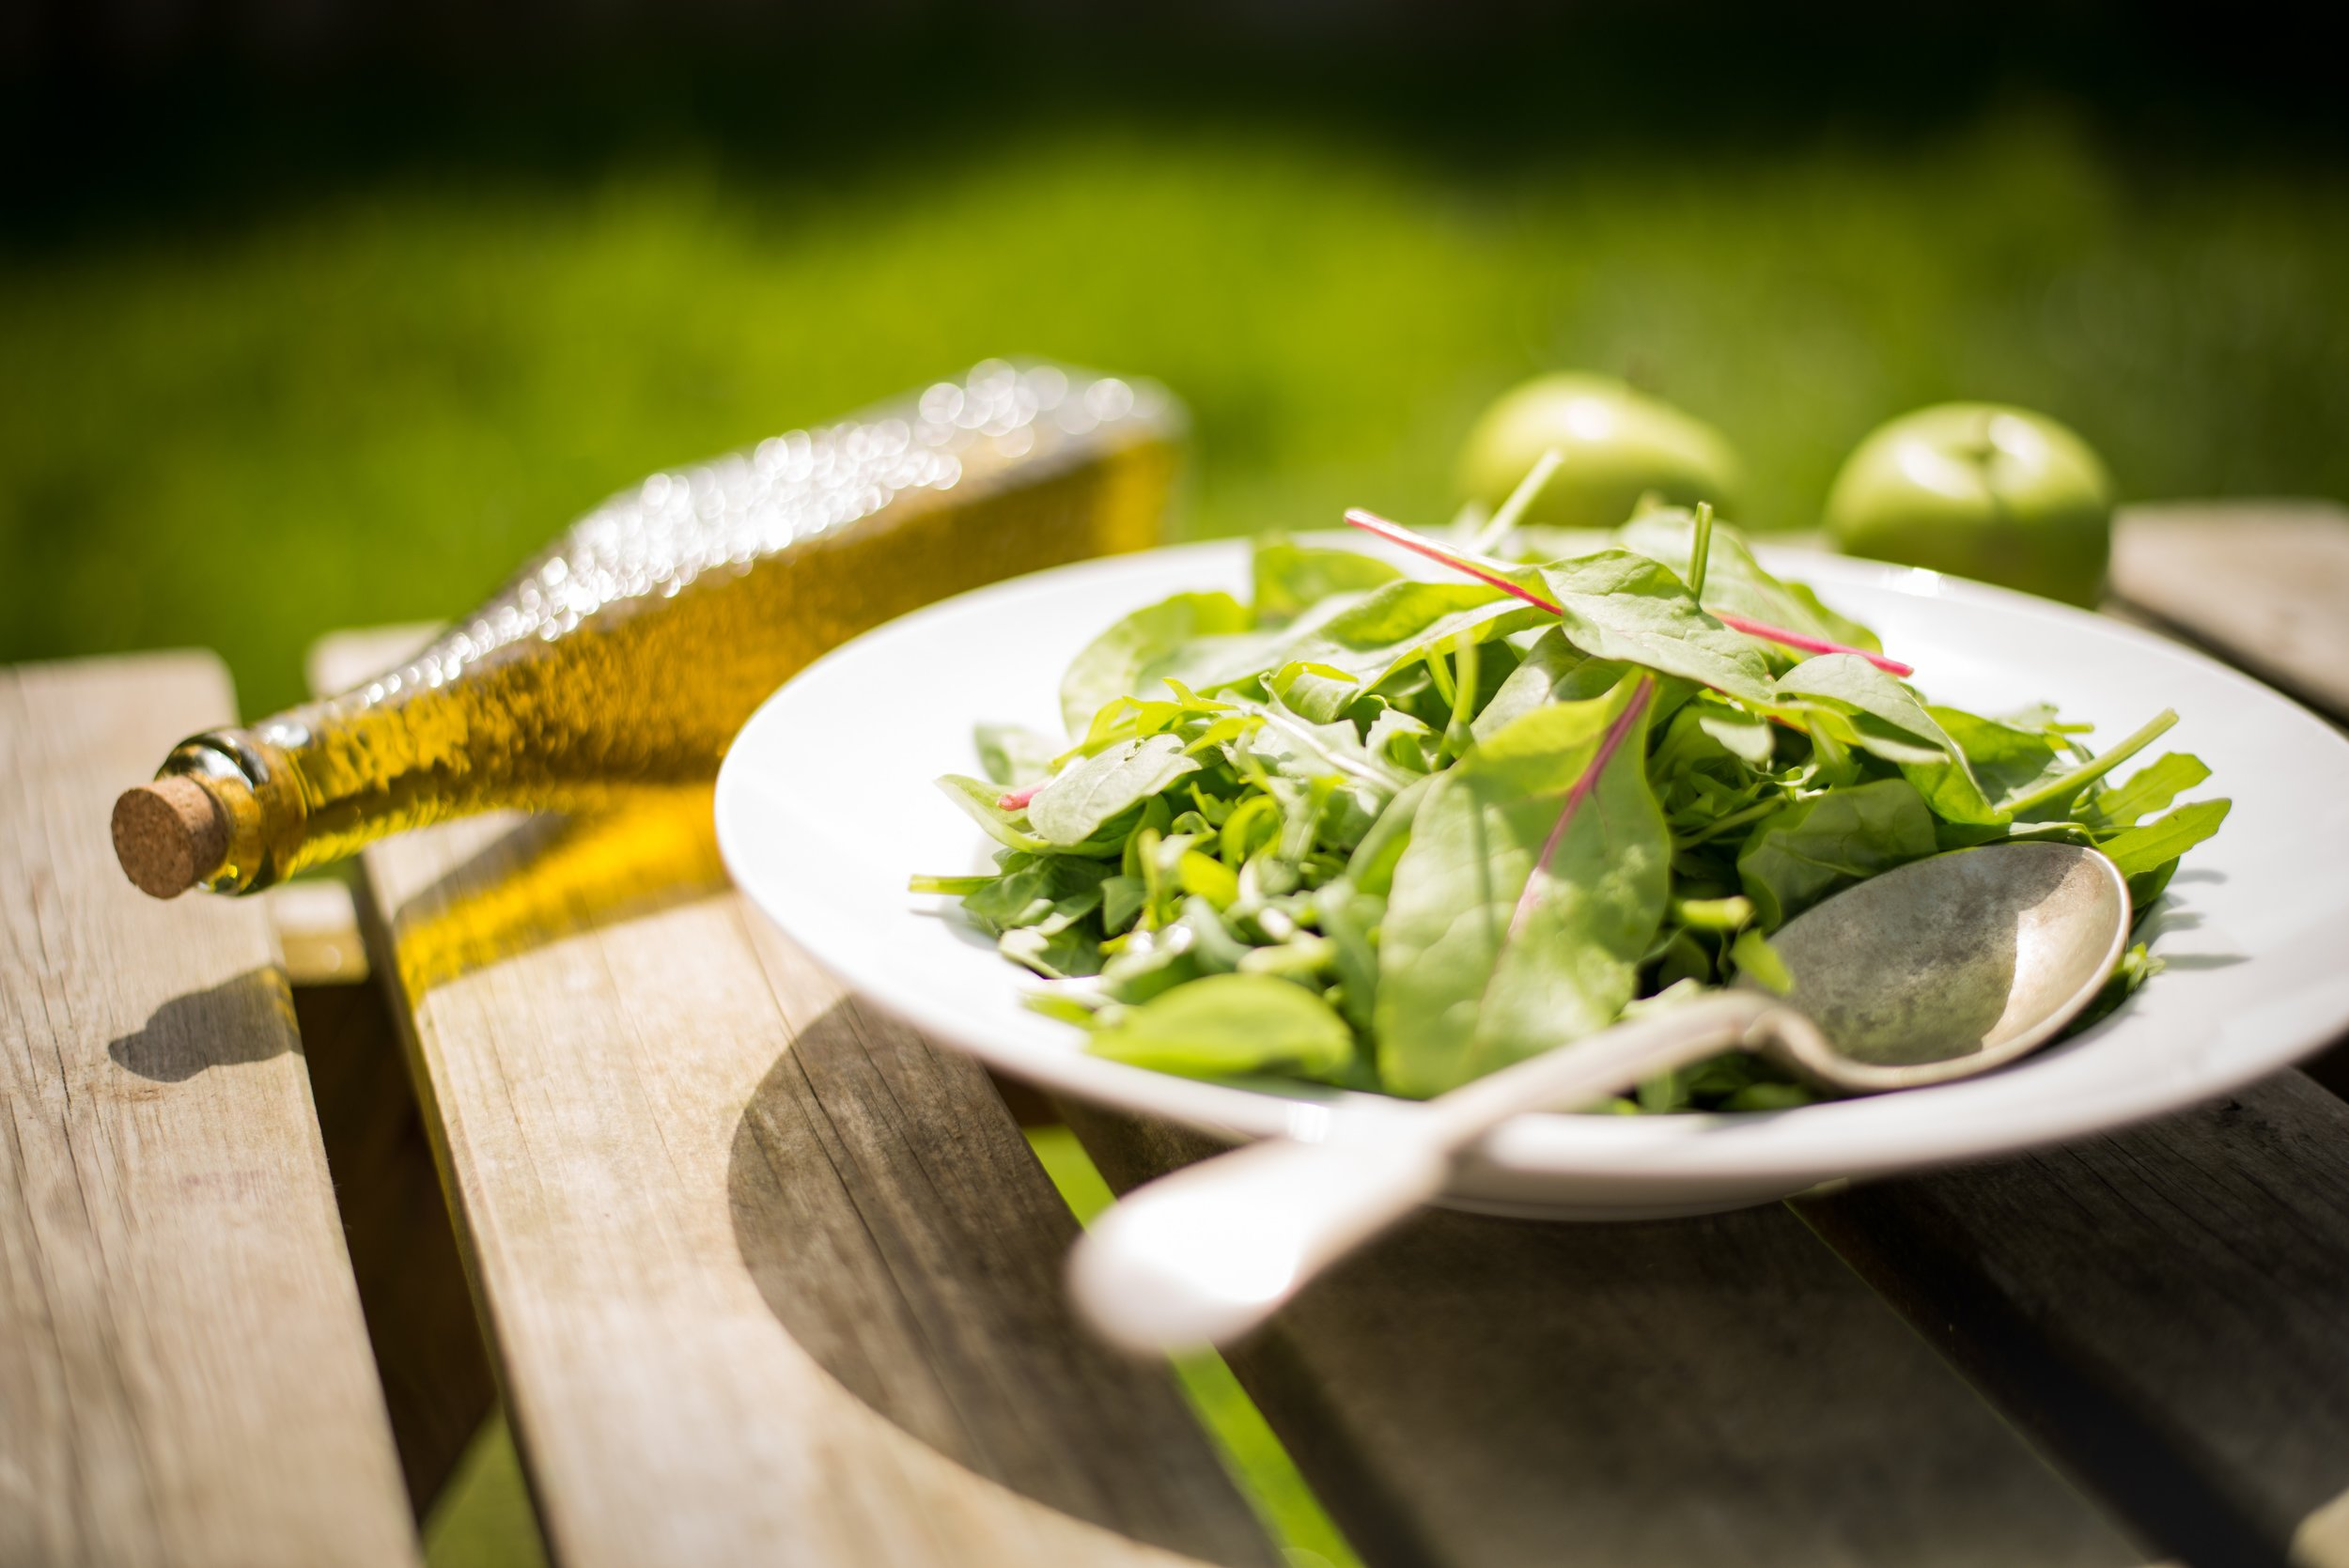 Include healthy fats like olive oil, avocado oil and coconut oil.